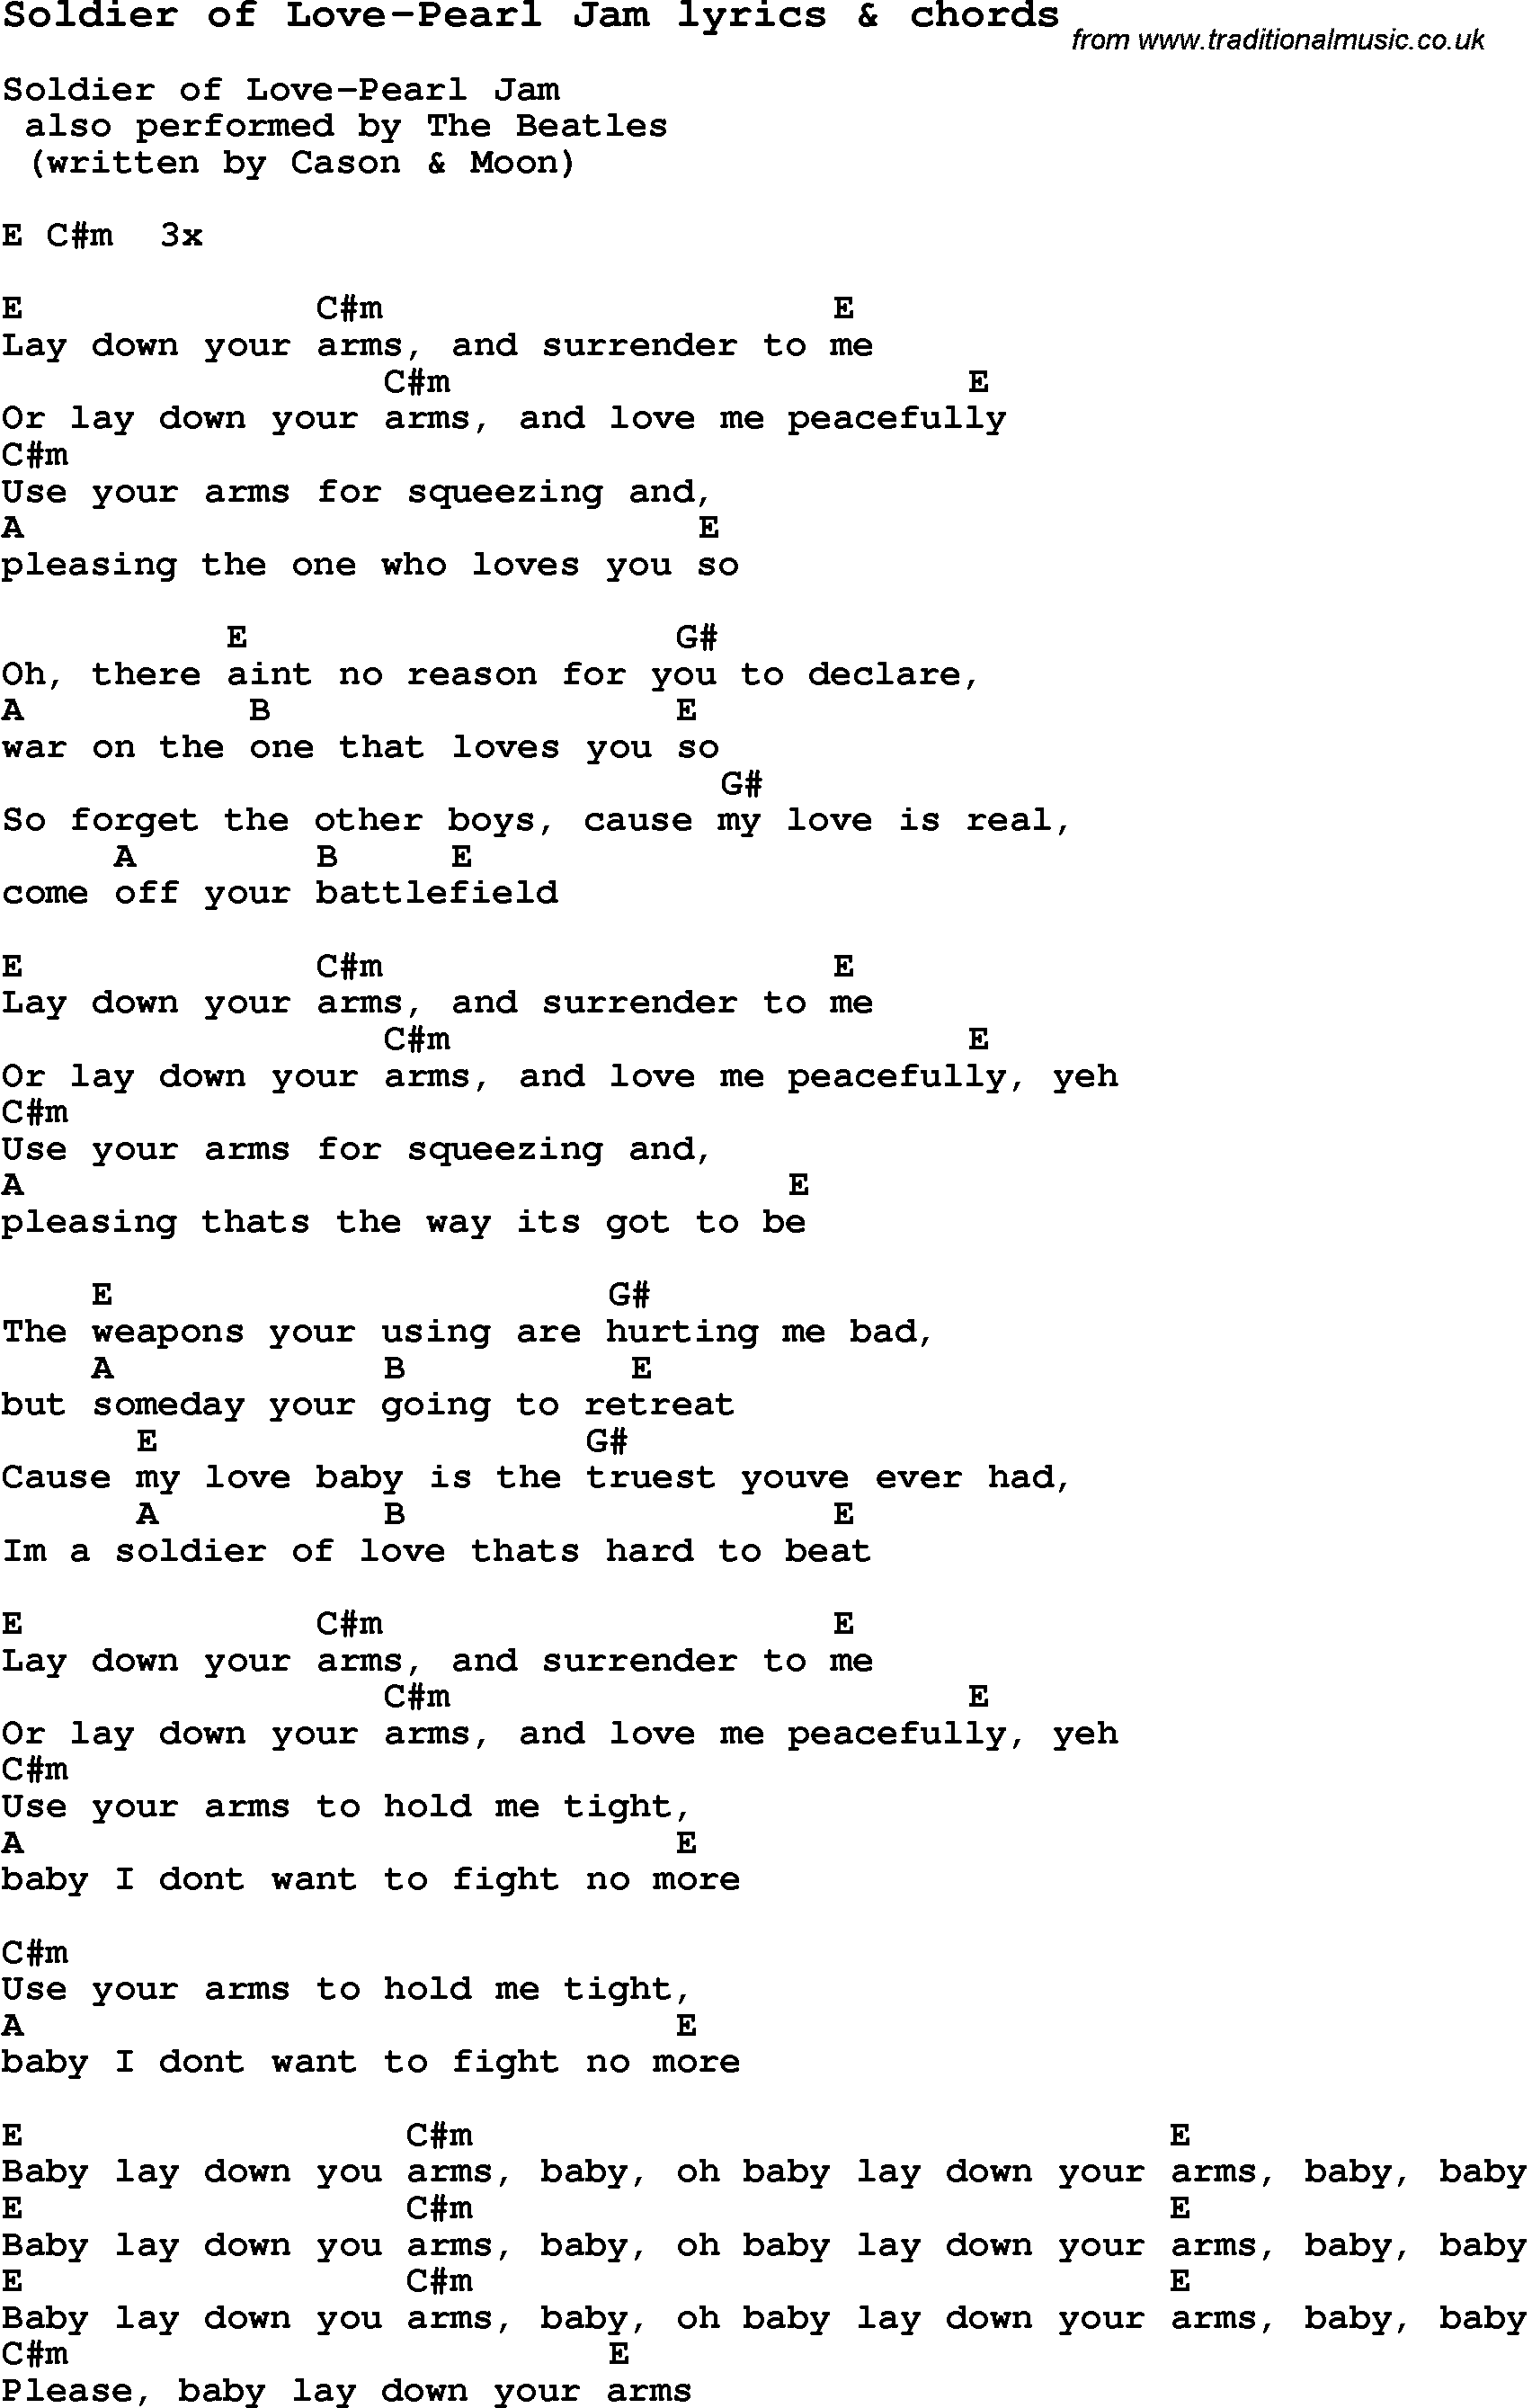 Love Song Lyrics Forsoldier Of Love Pearl Jam With Chords